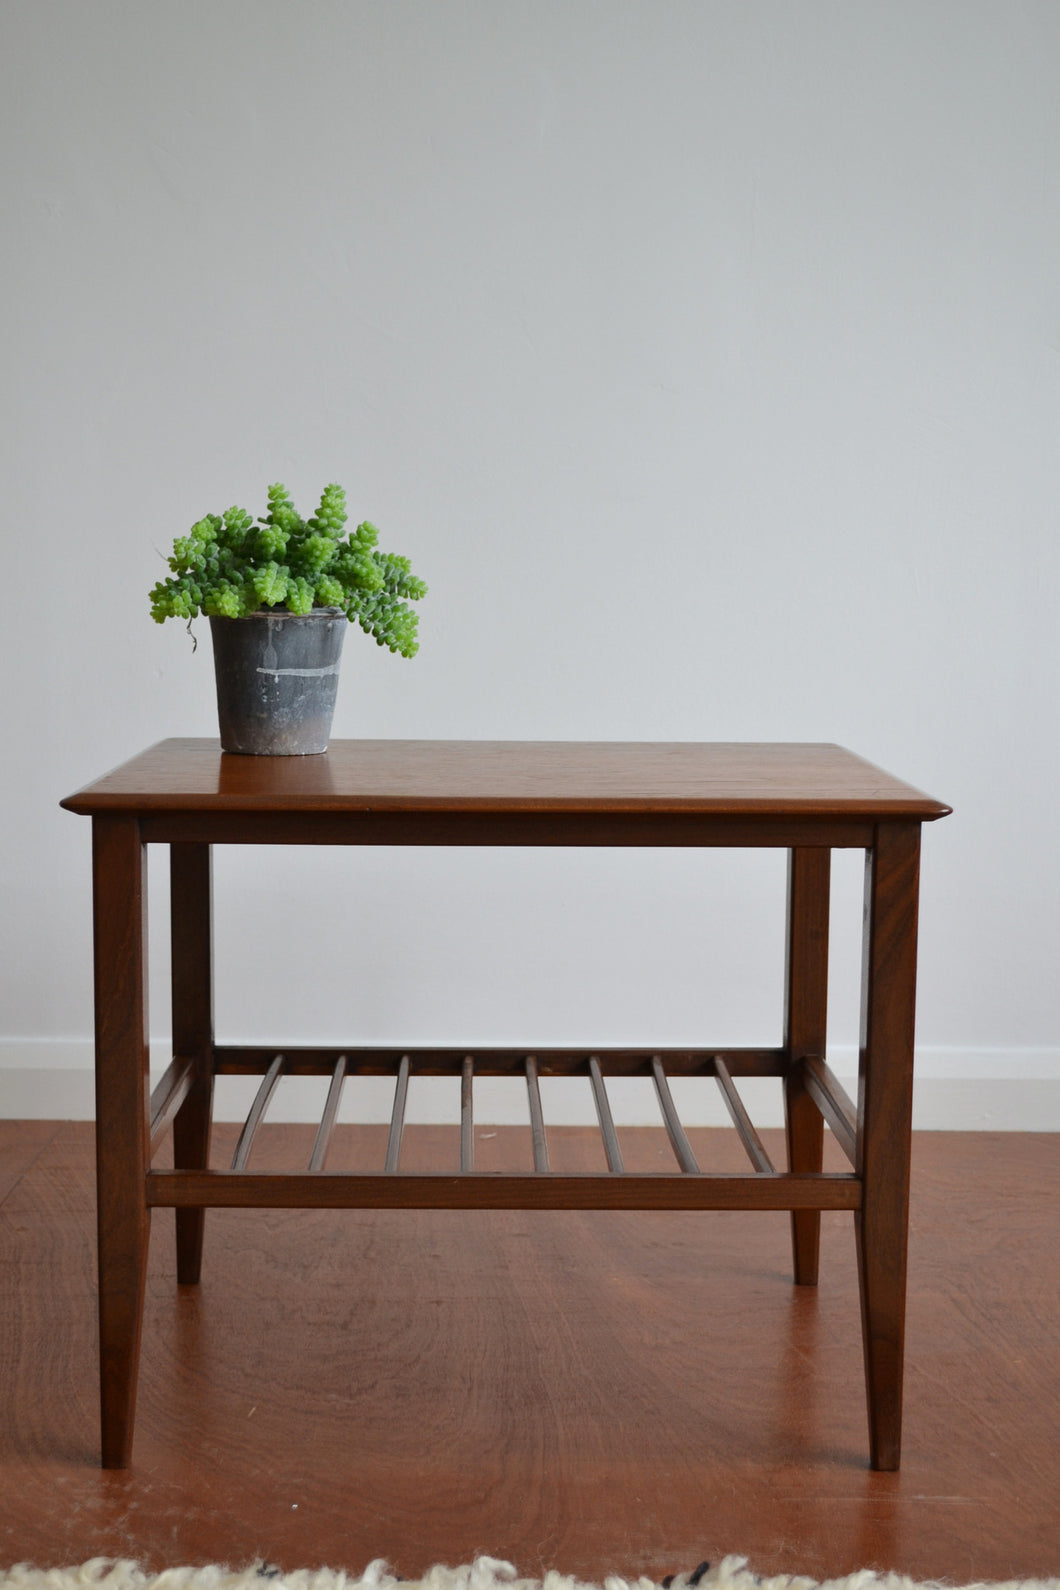 Vintage Teak Coffee/Side Table By Richard Hornby - Mid Century Modern - 1960's - SOLD